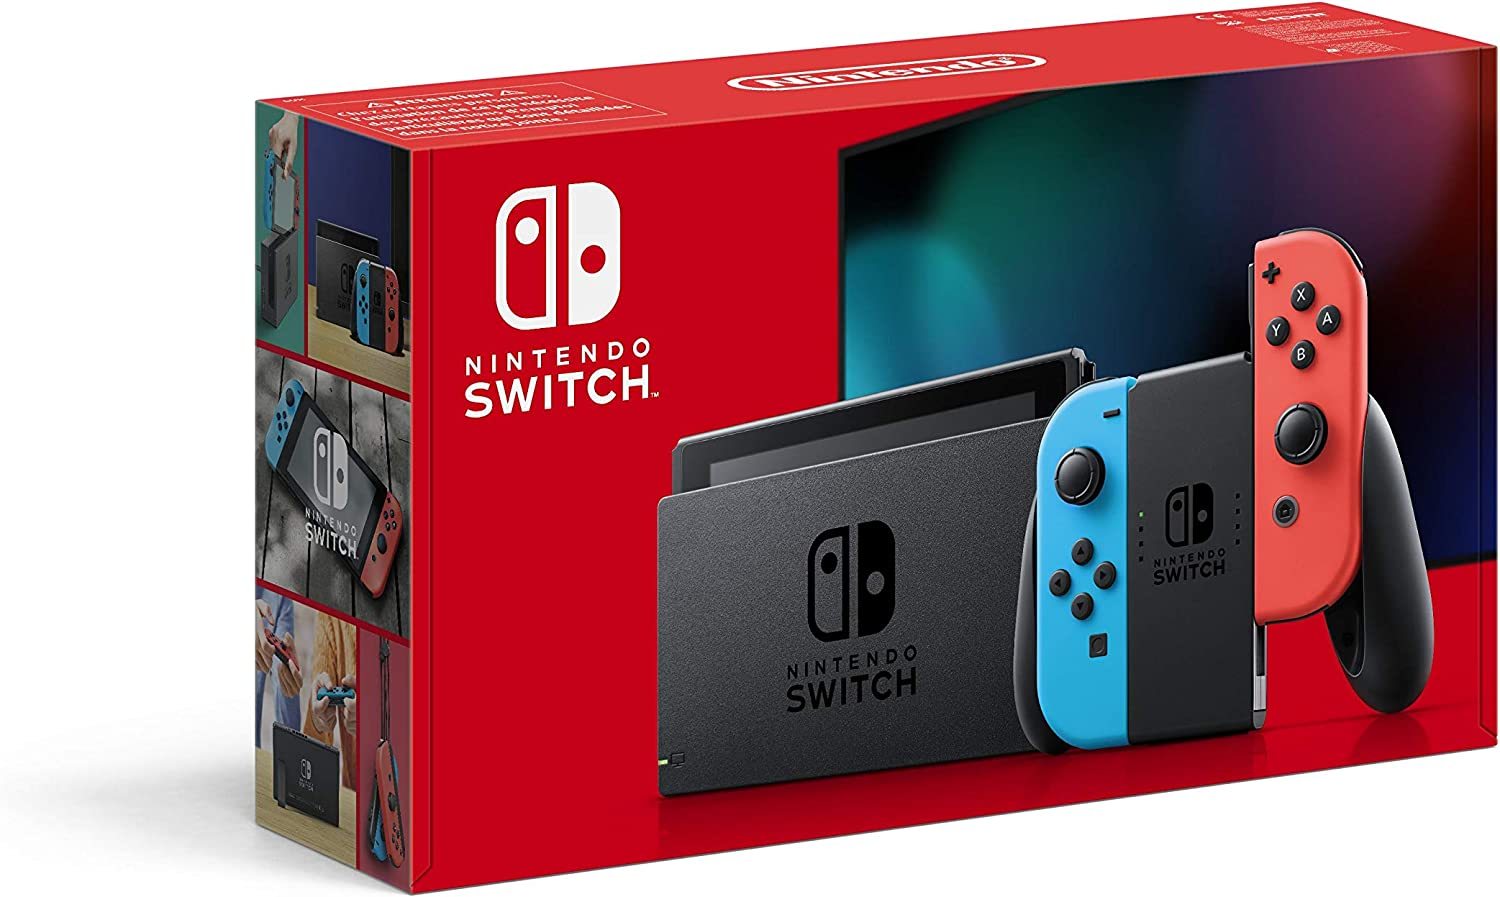 Nintendo Switch Neon Red Neon Blue Amazon Co Uk Pc Video Games